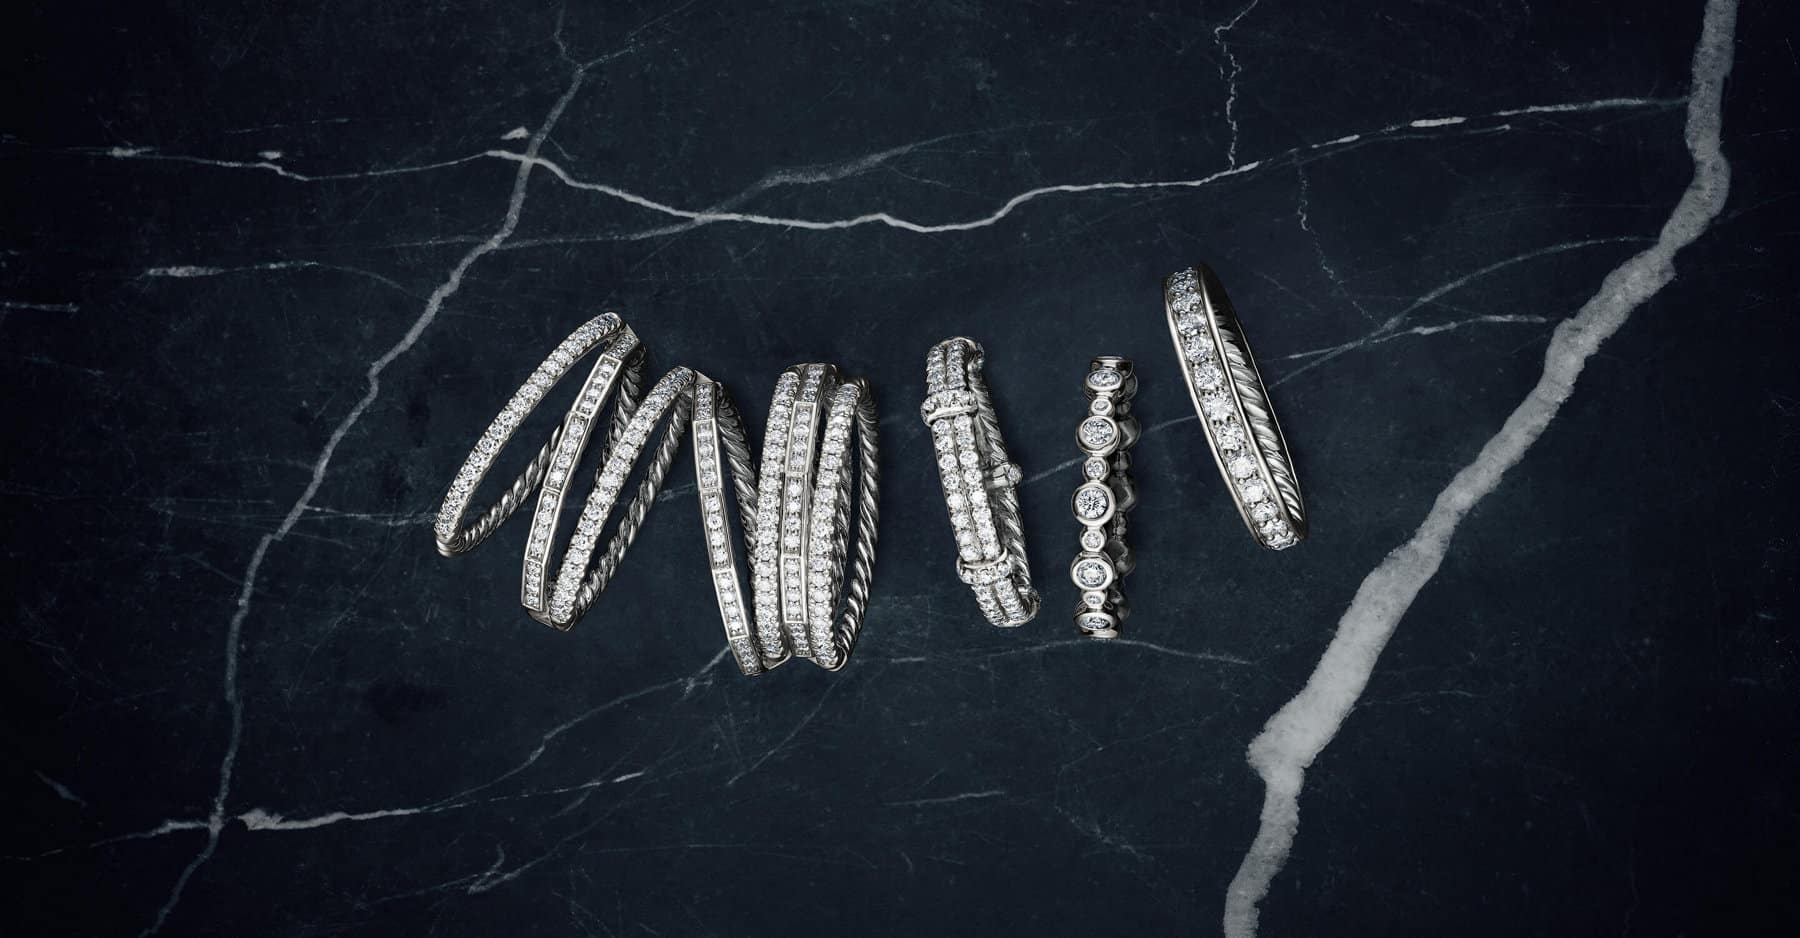 A color photo shows a row of David Yurman wedding bands from the Stax, DY Astor, DY Starlight and DY Eden collections atop a dark, marbled stone surface. Each ring is crafted in platinum with diamonds.